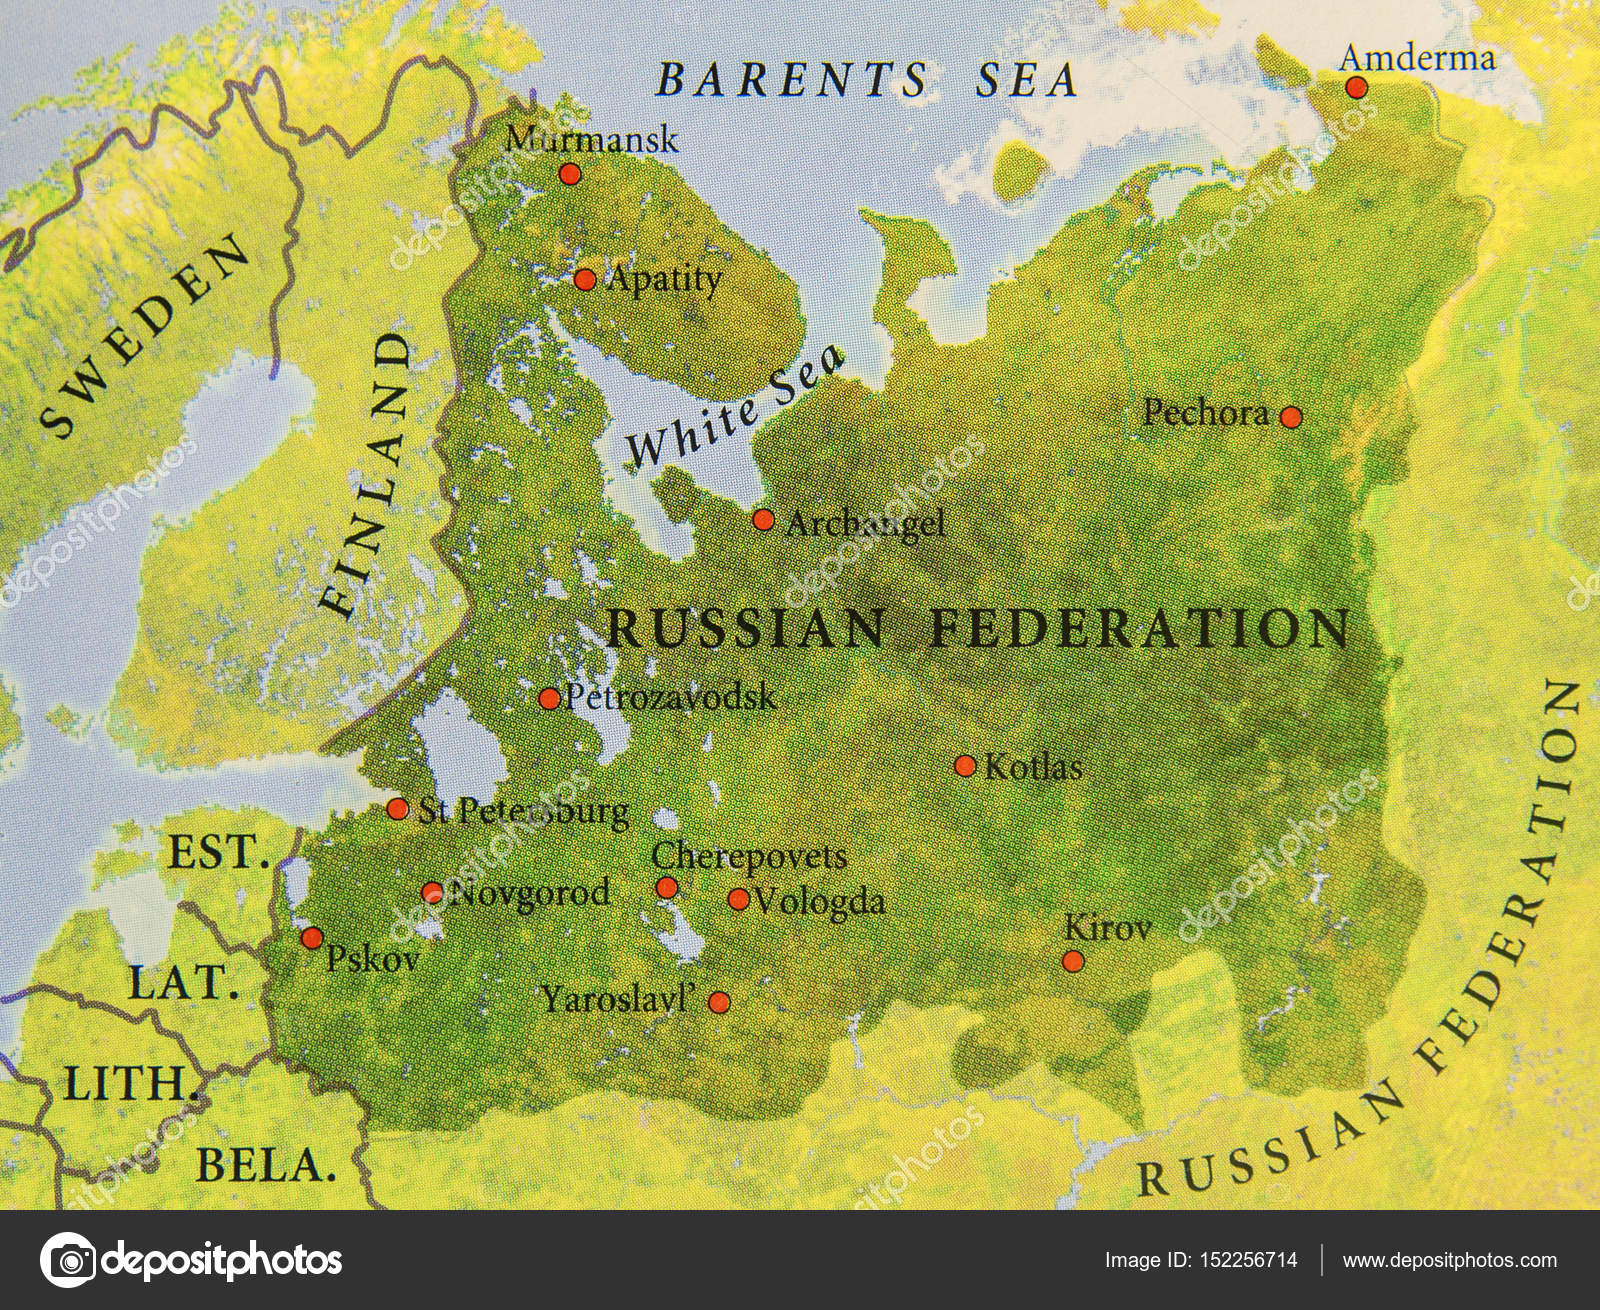 Geographic map of part of Russian Federation with important cite ...